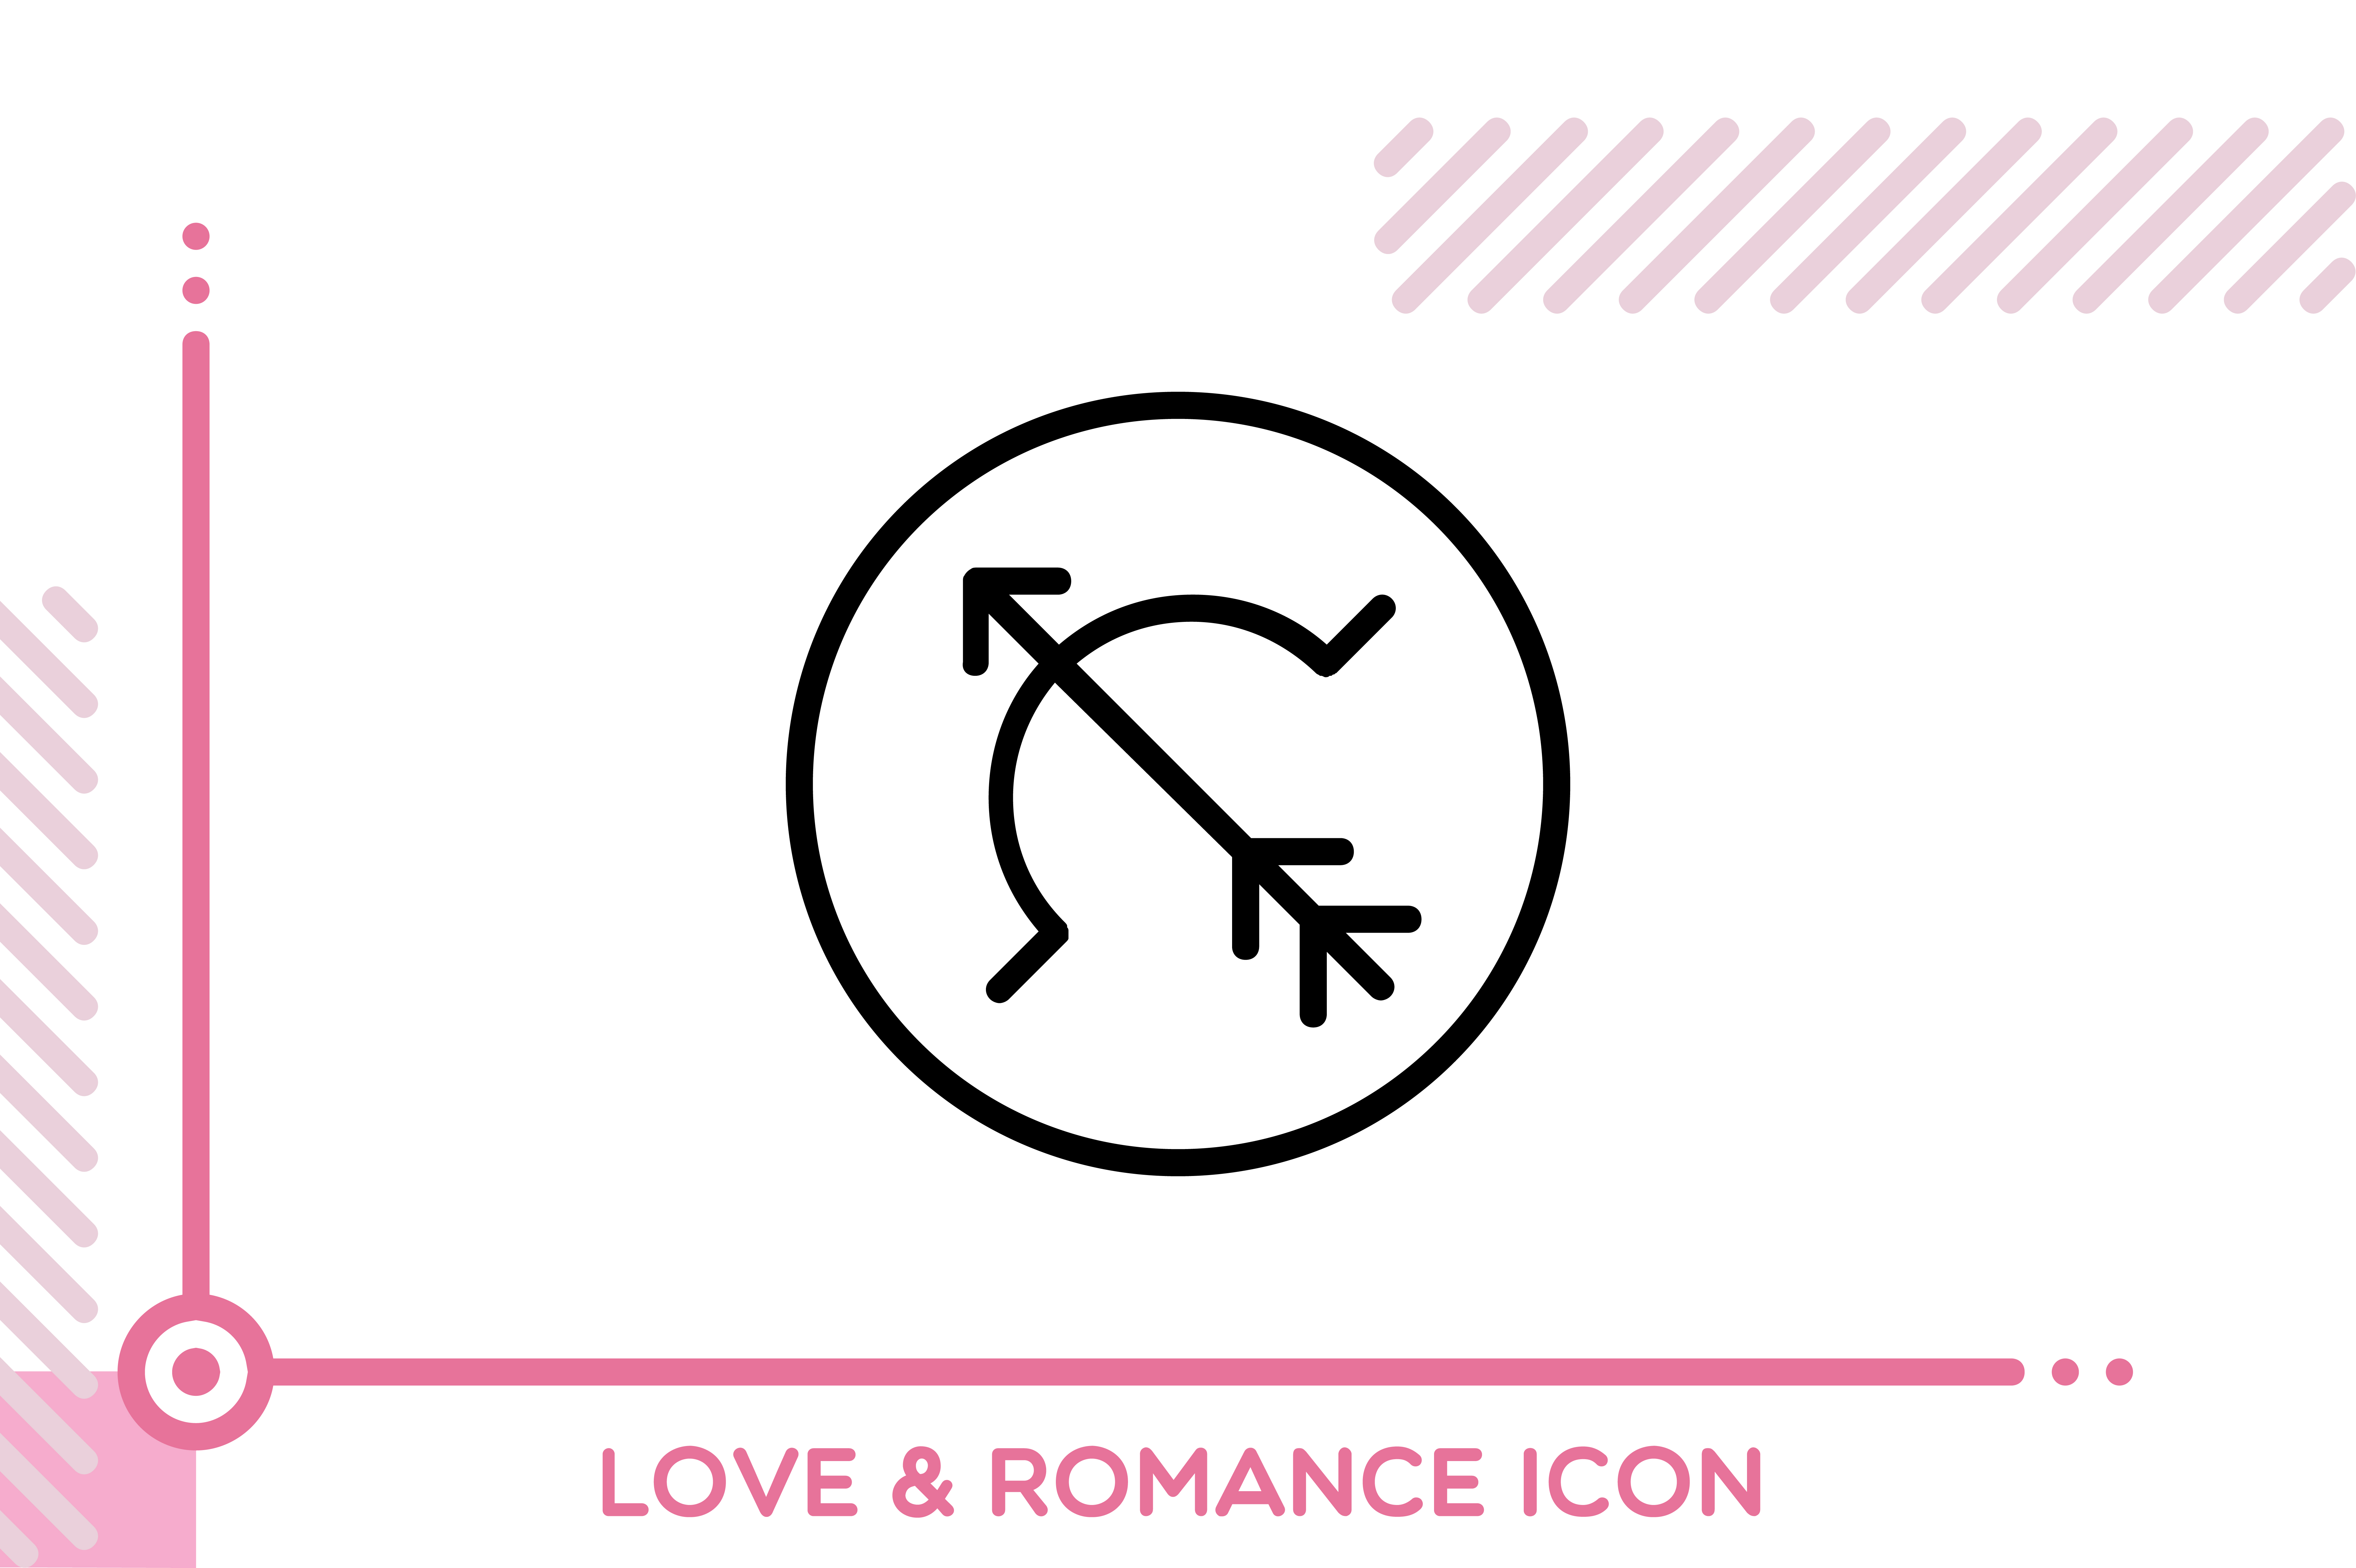 Download Free Love And Romance Arrow Graphic By Freddyadho Creative Fabrica for Cricut Explore, Silhouette and other cutting machines.